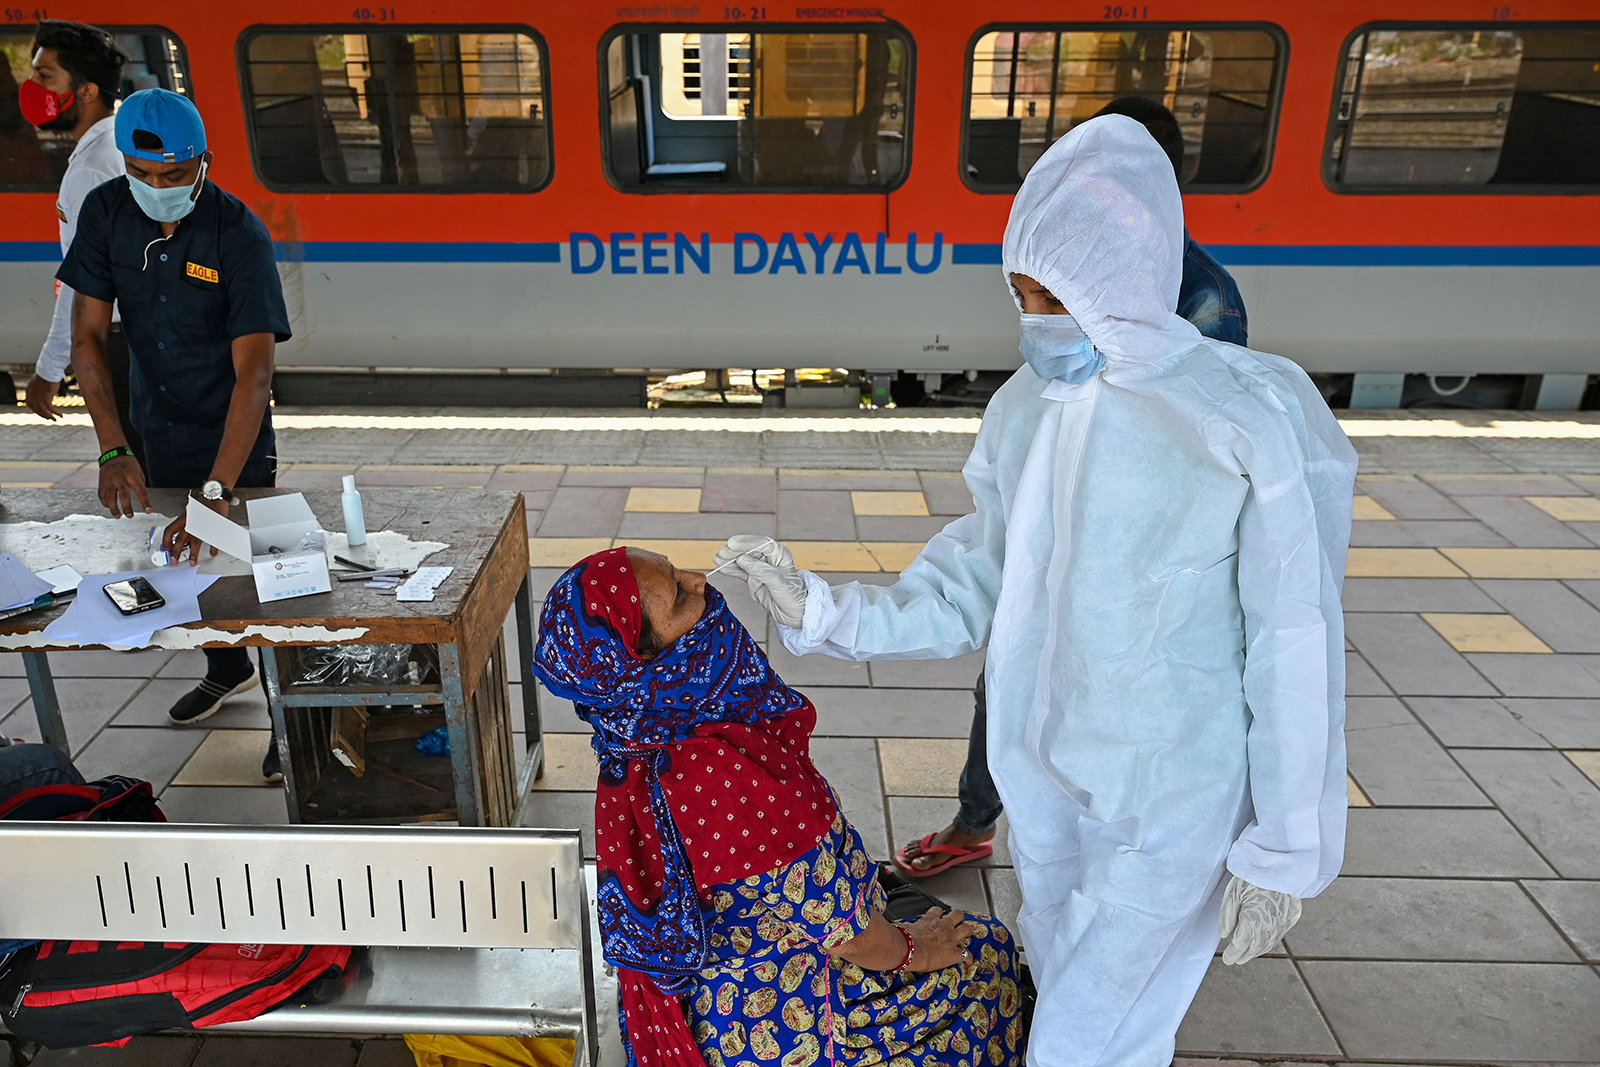 A health worker takes a nasal swab sample from a passenger for a Covid-19 test after arriving at a railway platform, in Mumbai, India, on April 14.